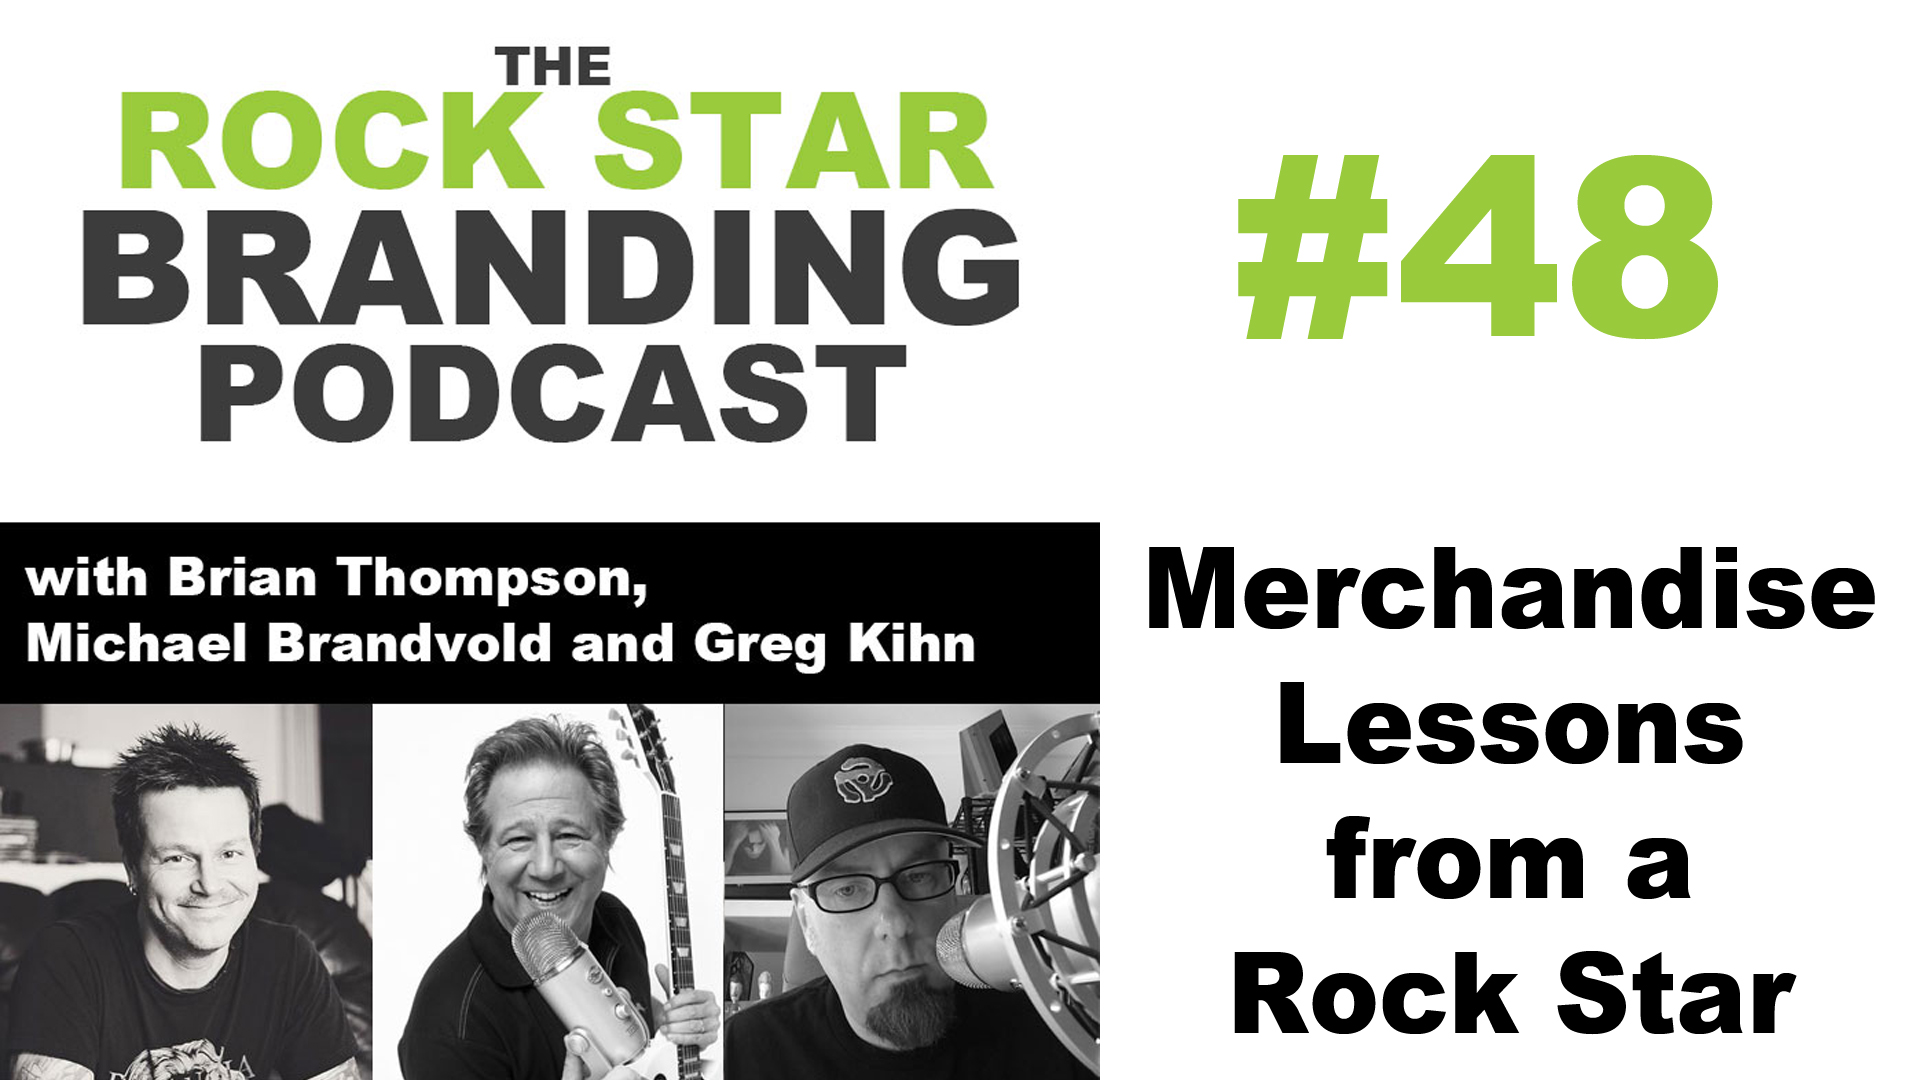 Merchandise Lessons from a Rock Star, Greg Kihn on Rock Star Branding